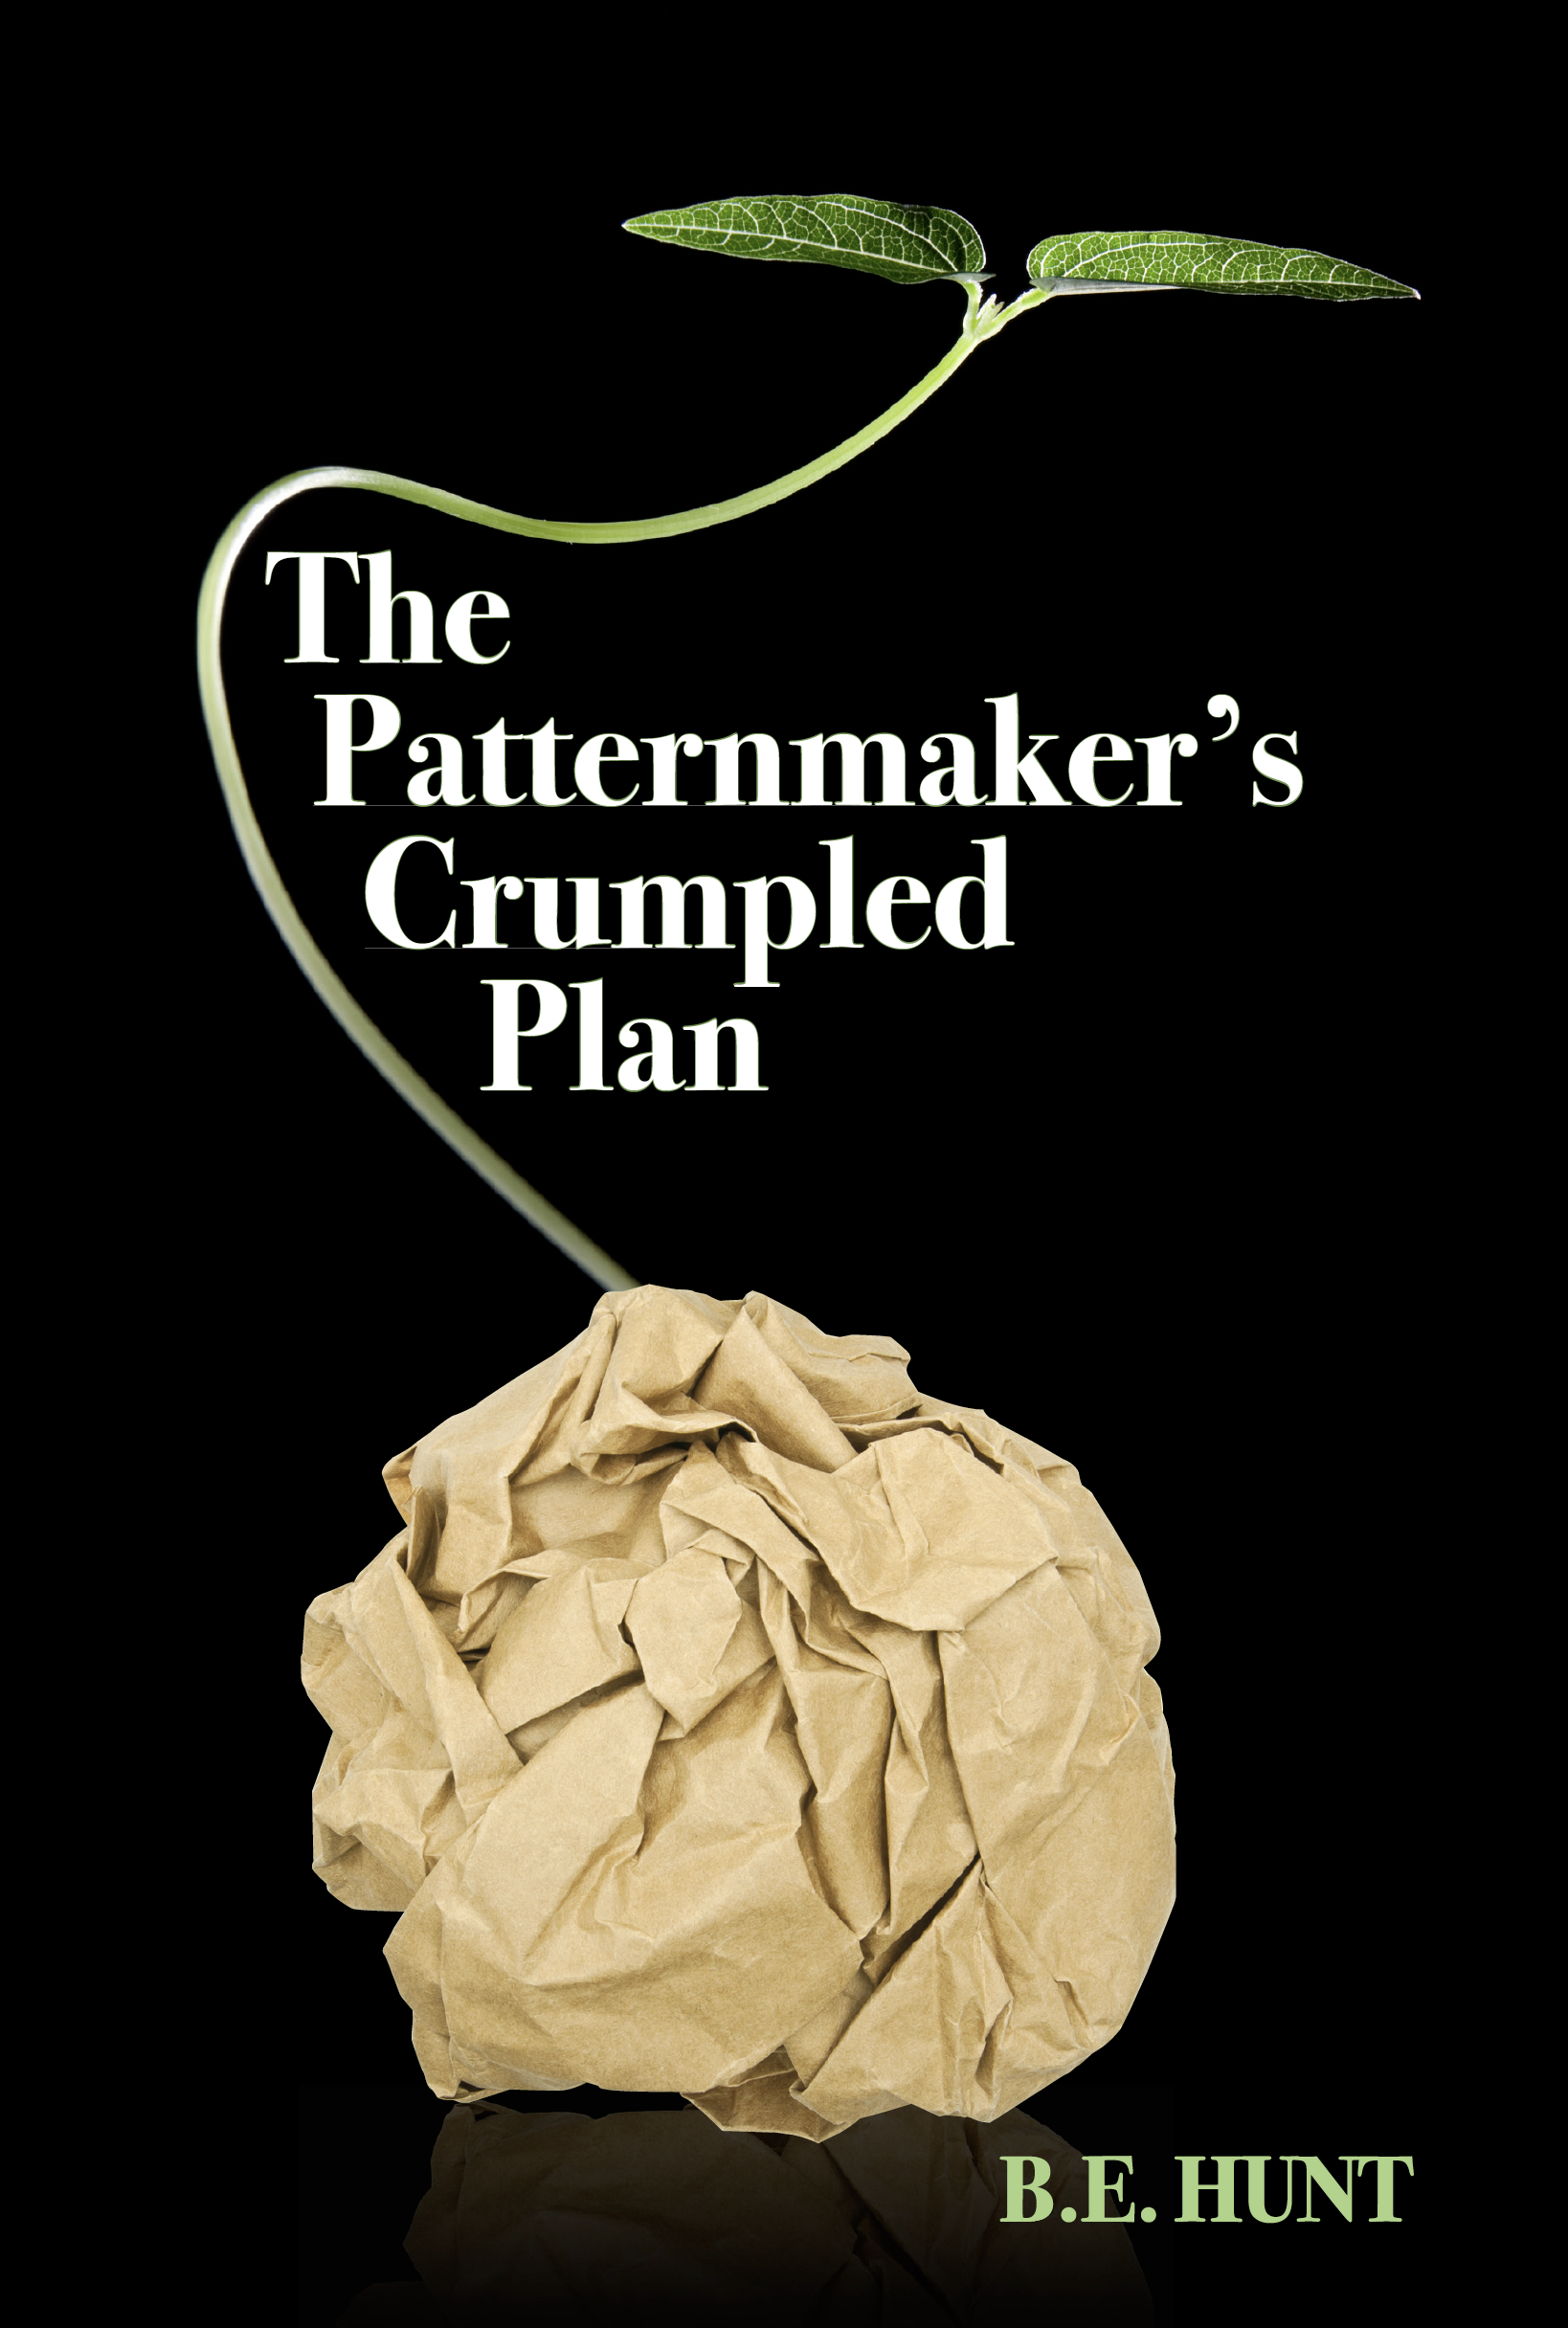 patternmakers crumpled plan cover